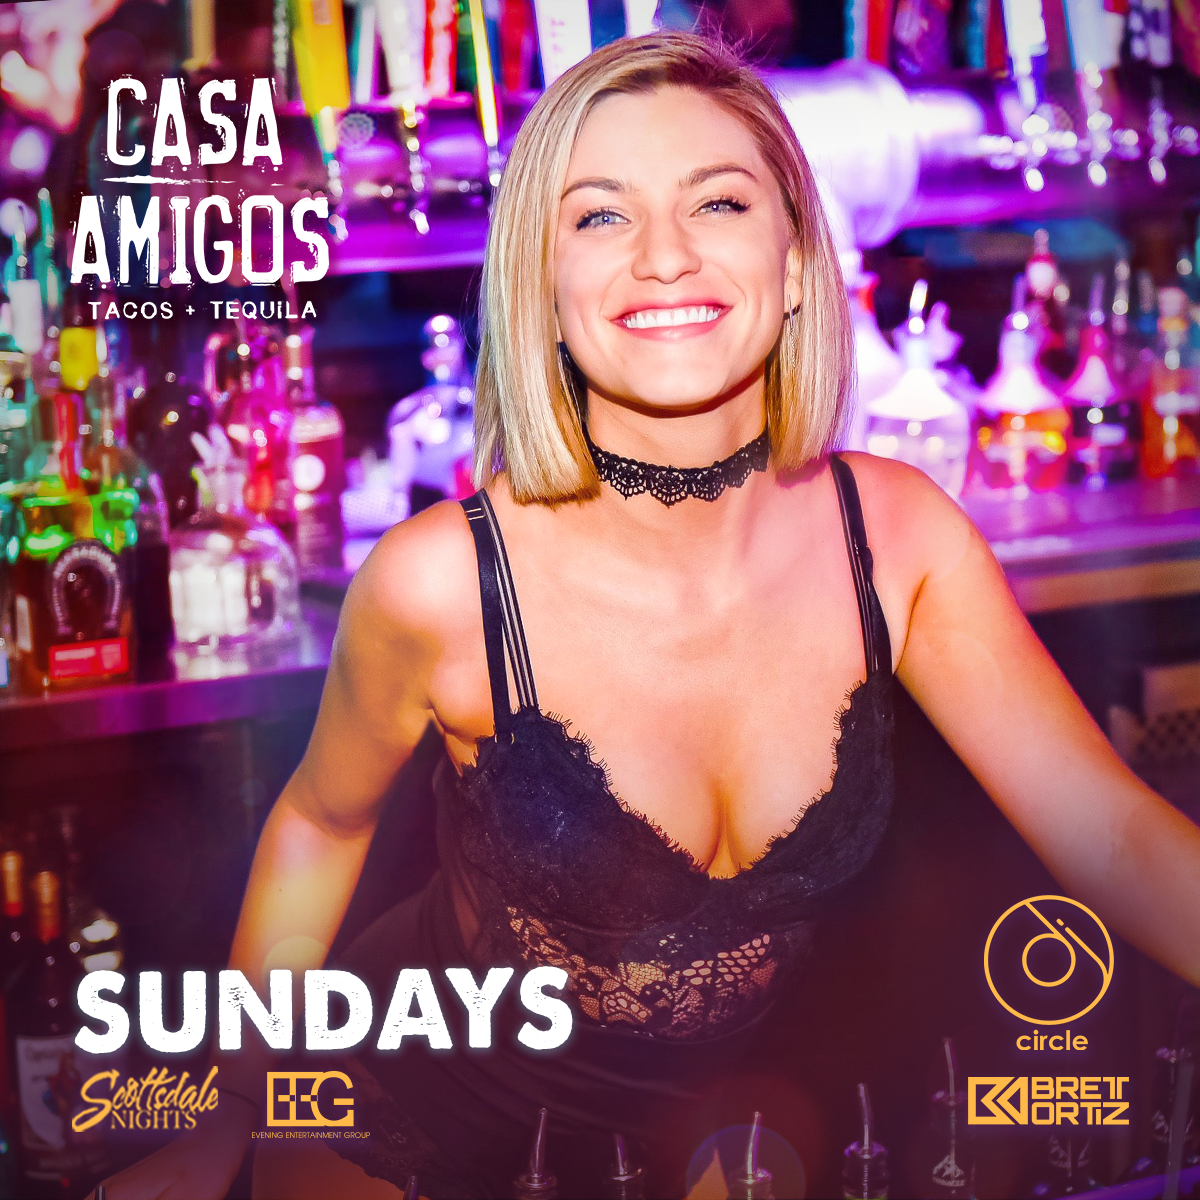 Come see this Gorgeous bartender smile behind the bar ...